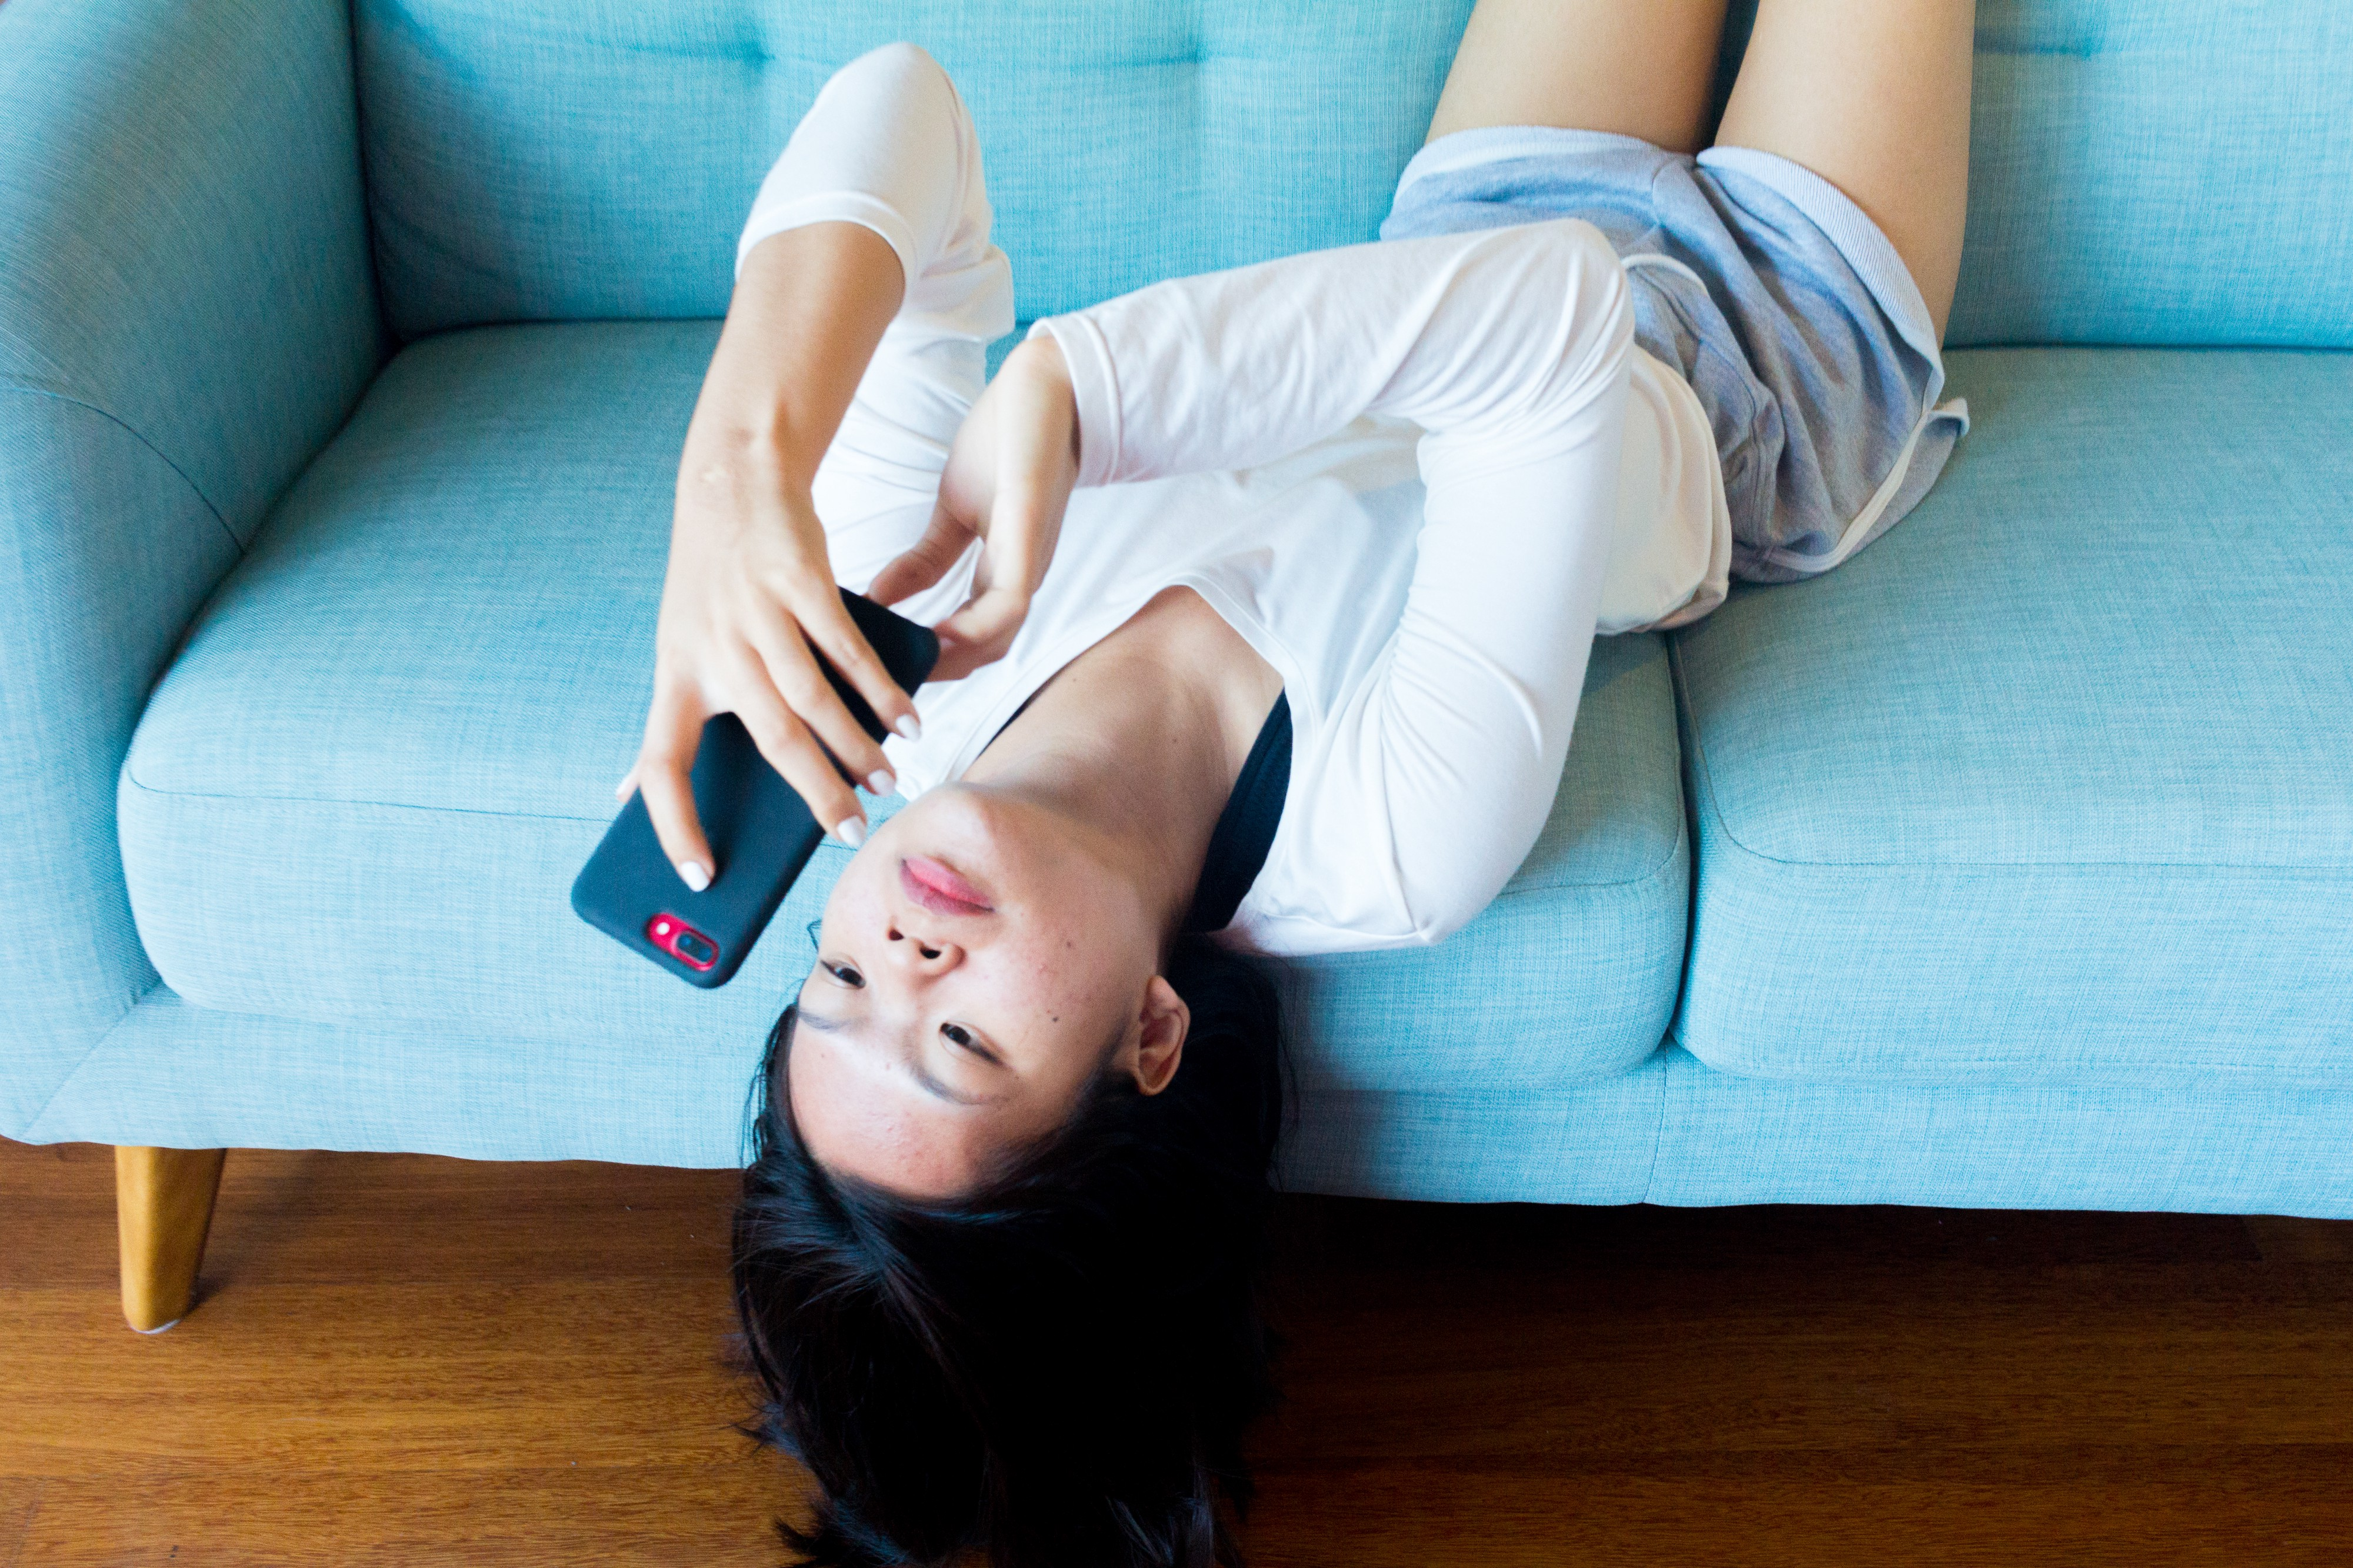 Teenage girl laying down upside down on a couch using her smartphone